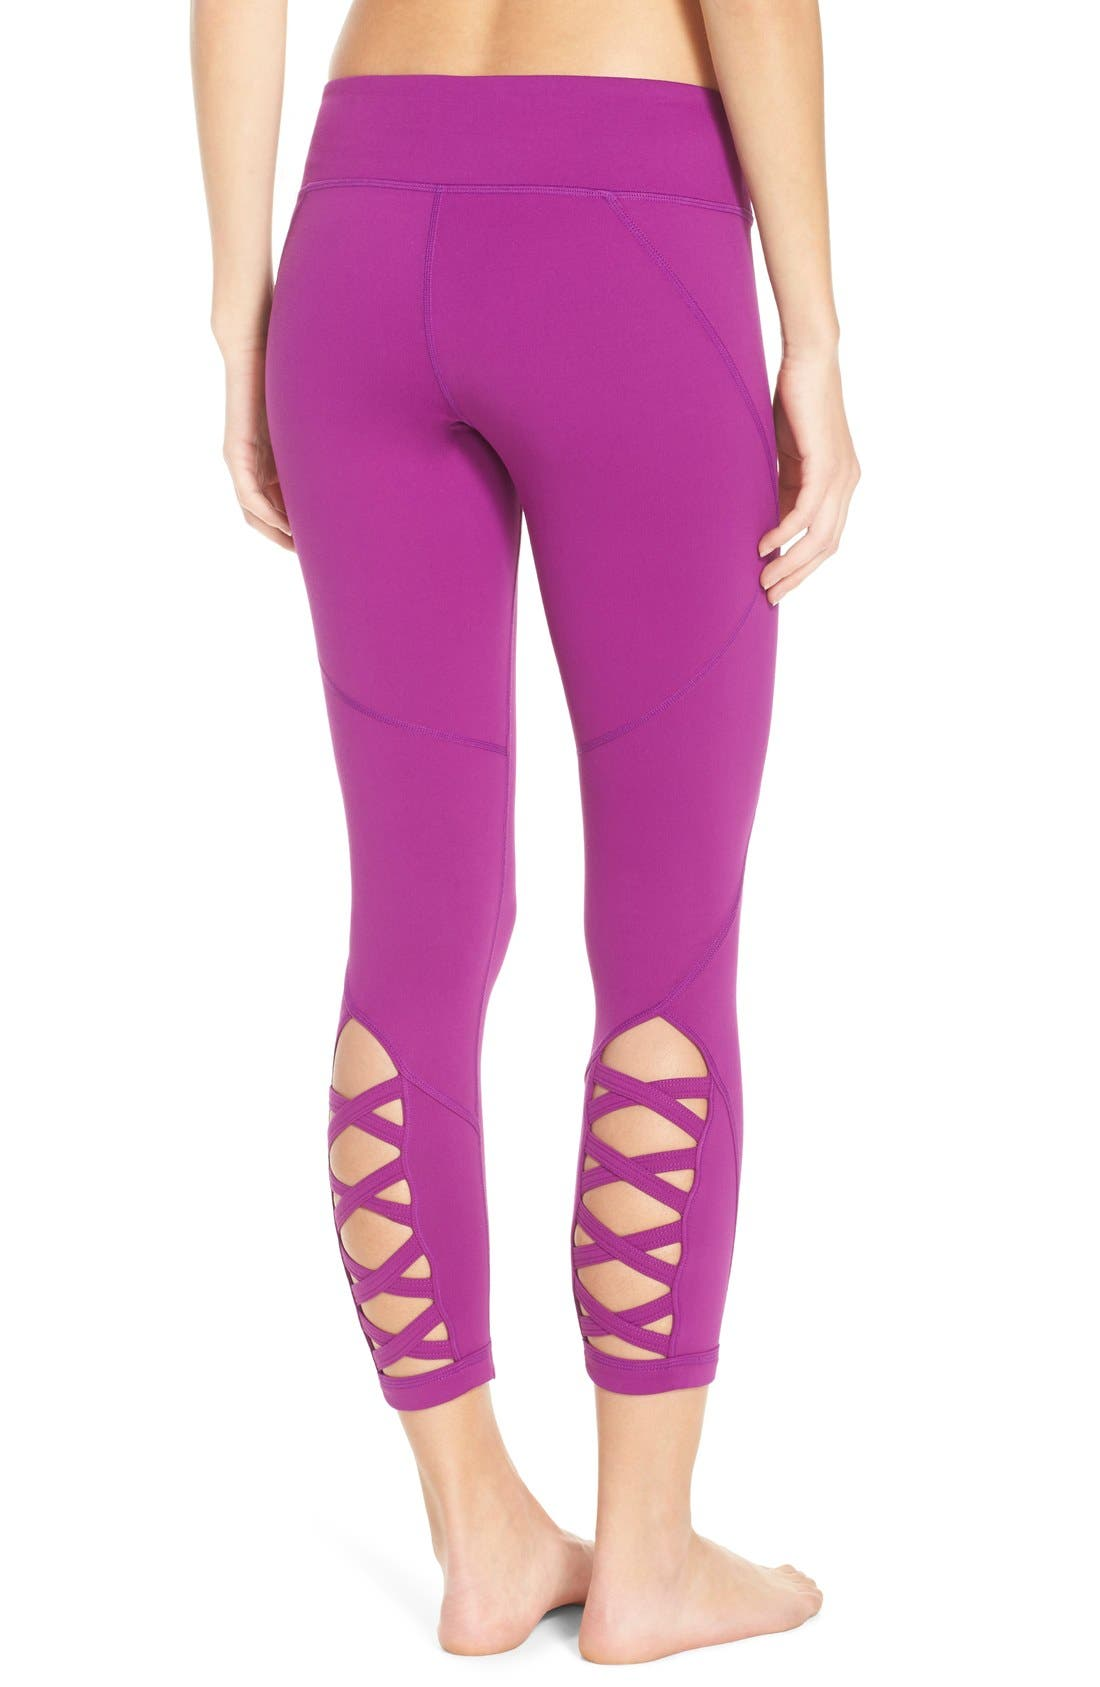 Alternate Image 1 Selected - Zella 'Lattice' Crop Leggings